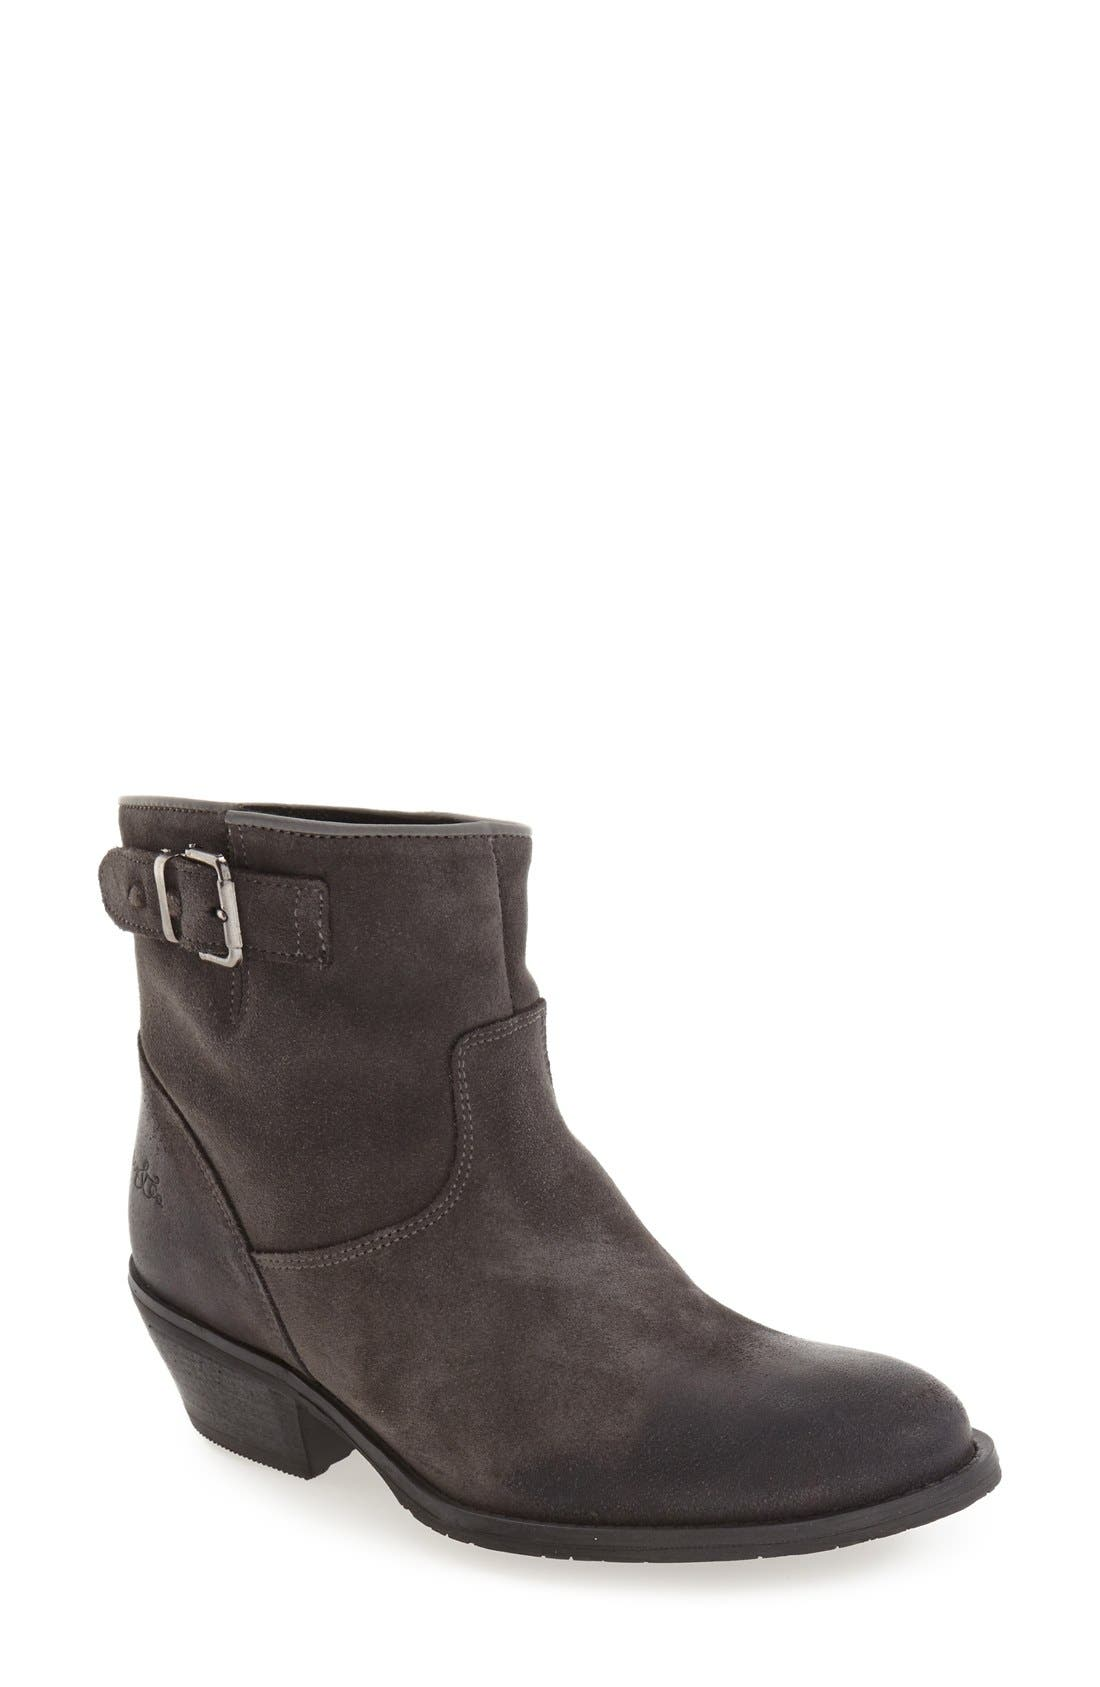 'Ramona' Waterproof Bootie,                             Main thumbnail 1, color,                             Grey Oil Suede